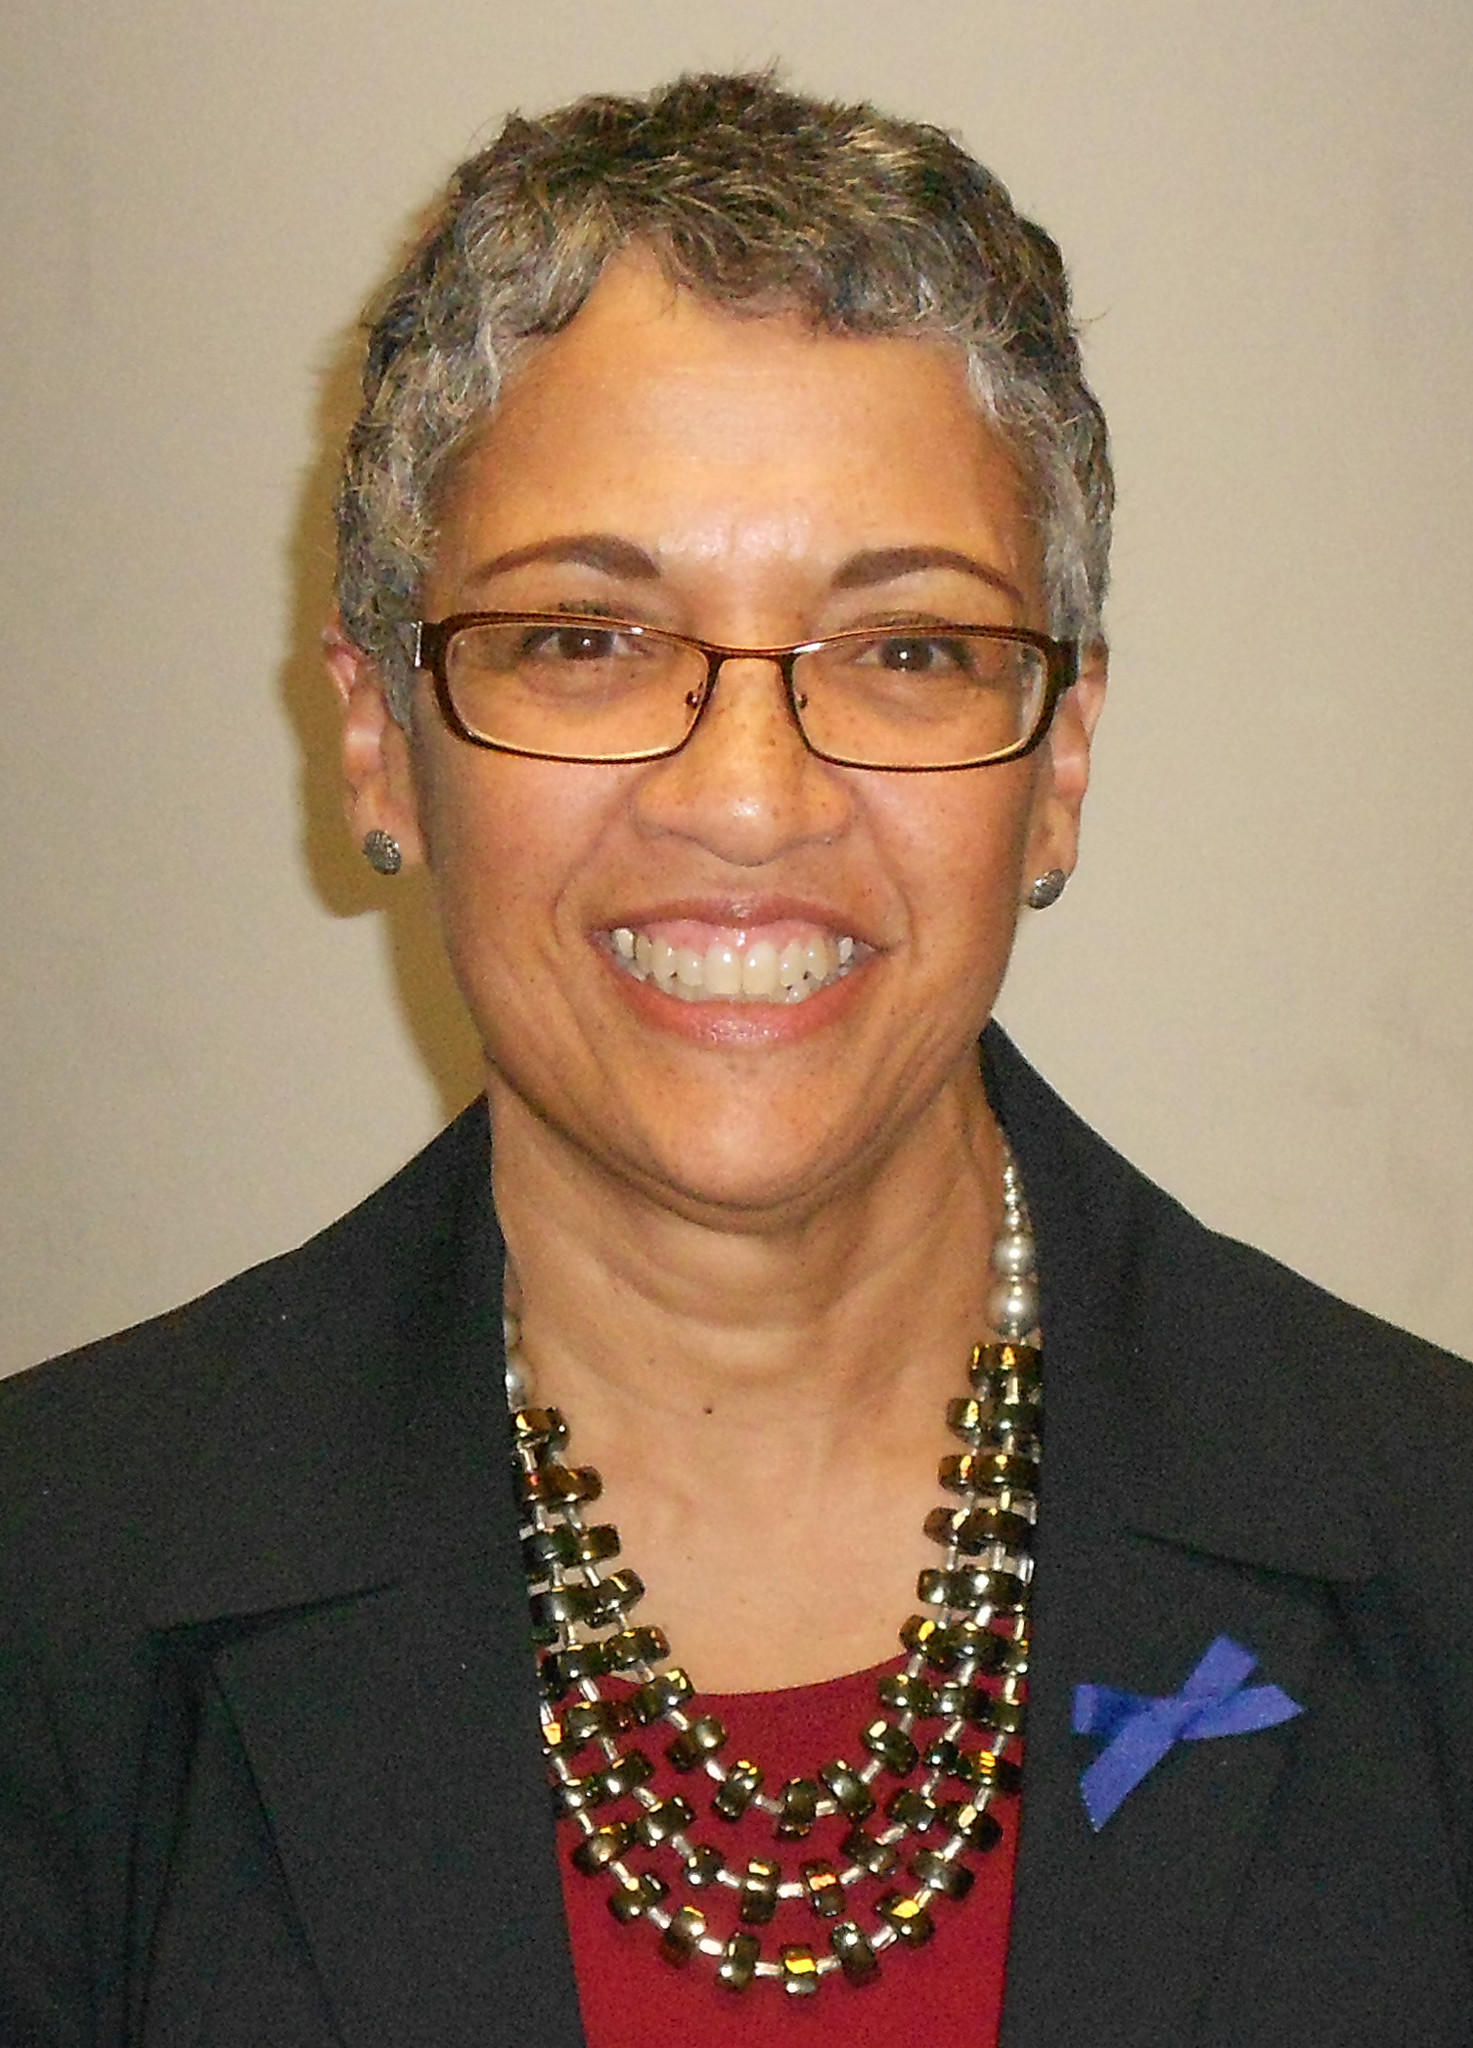 Bobbie M. Gregg, who has been interim director of the state's Department of Children and Family Services since late February, received Gov. Pat Quinn's nomination to continue heading the agency.